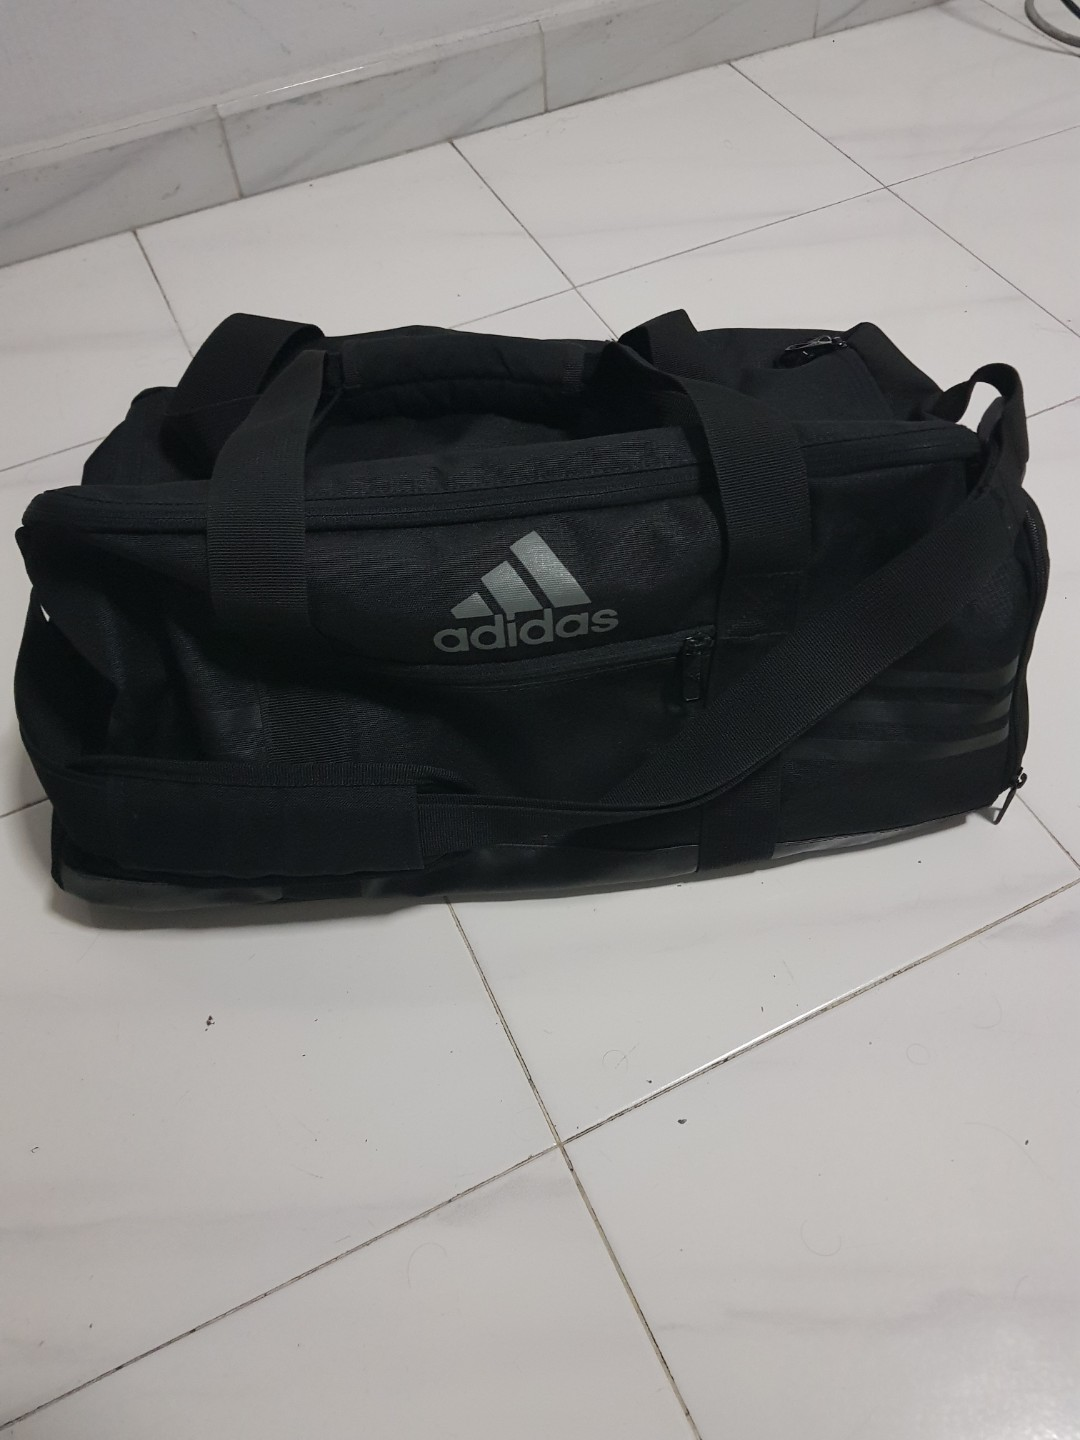 311c1863916 Adidas gym Duffle Bag, Men's Fashion, Bags & Wallets, Others on ...